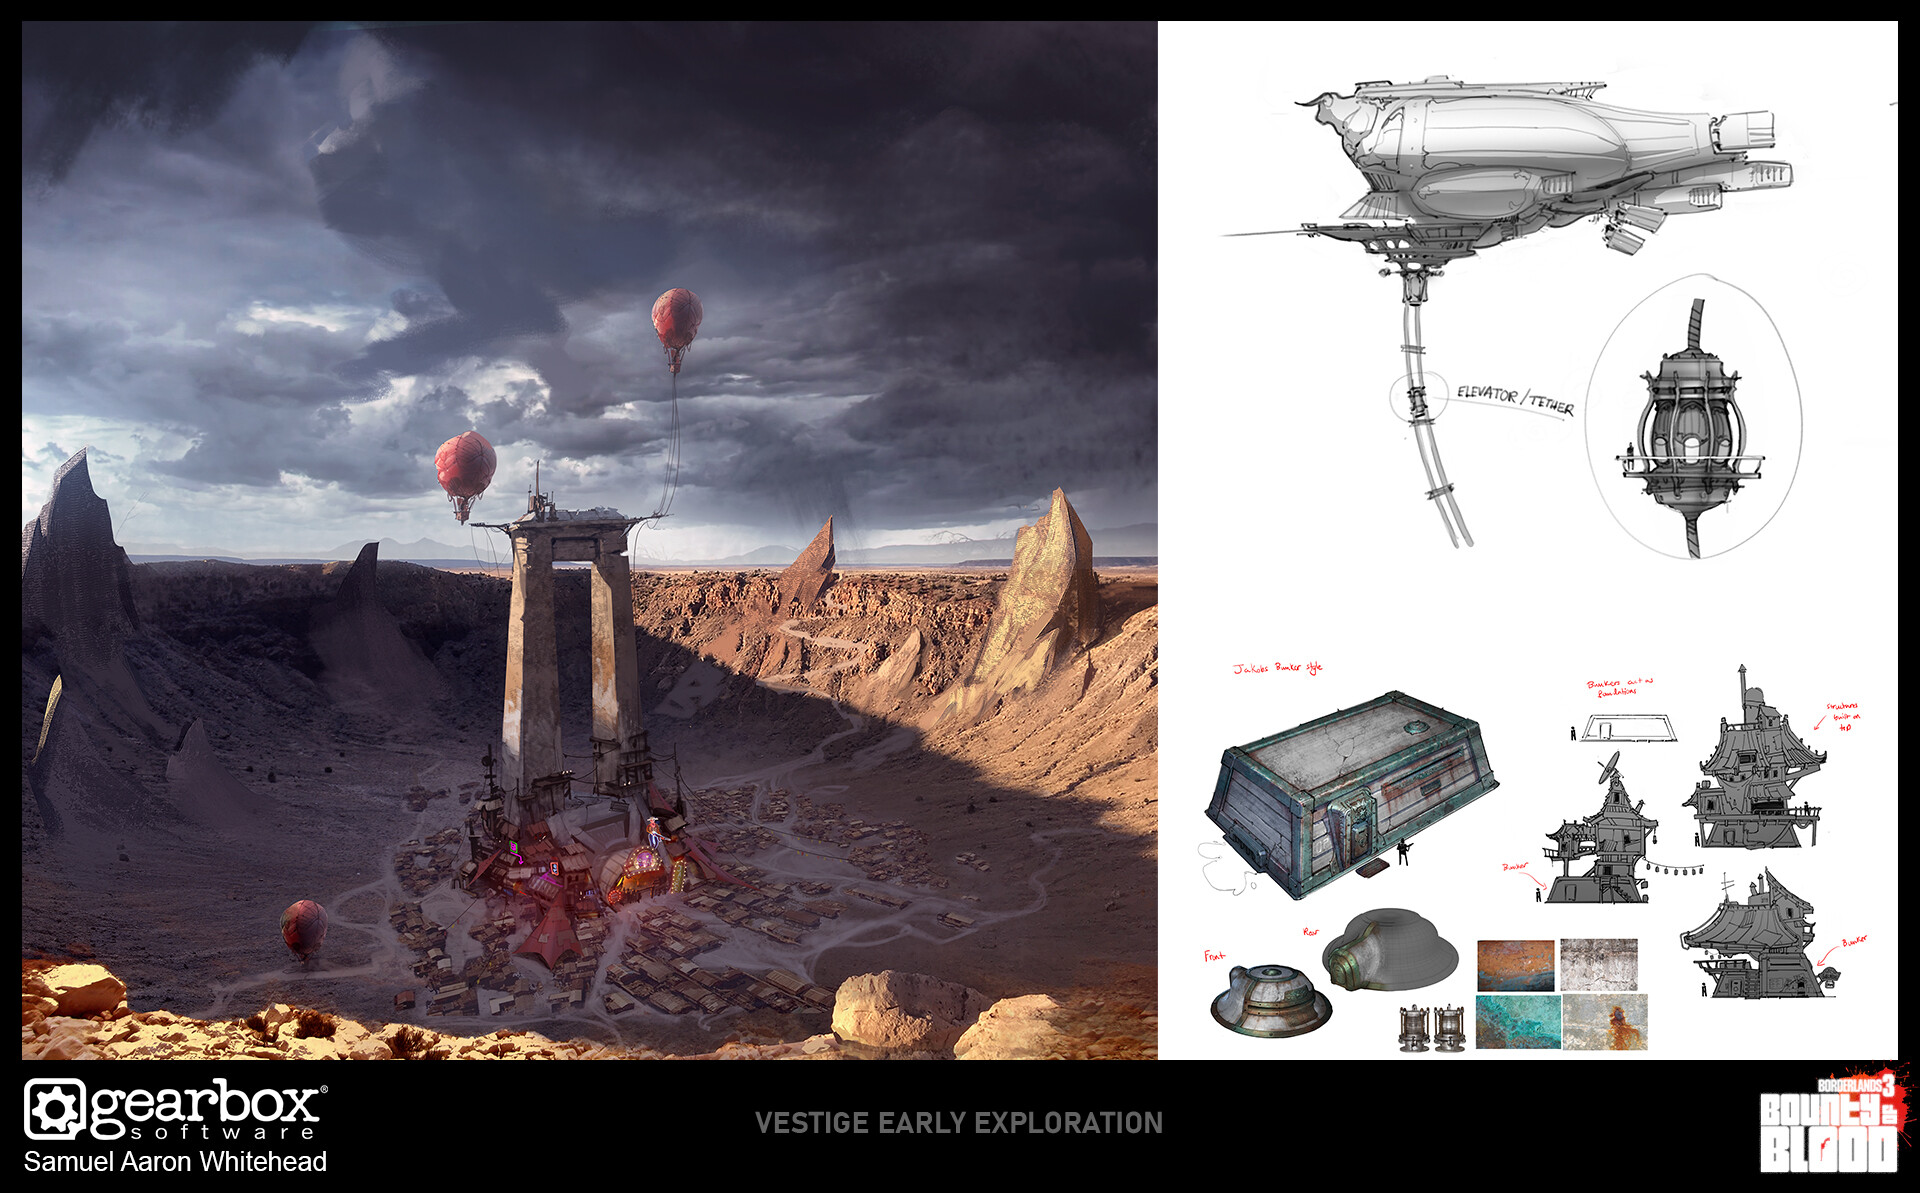 Exploration for the town of Vestige circled around the idea that the town was used as an observation point for high yield bomb tests during the companies reign - thus early exploration involved buildings augmented from existing company bunkers.